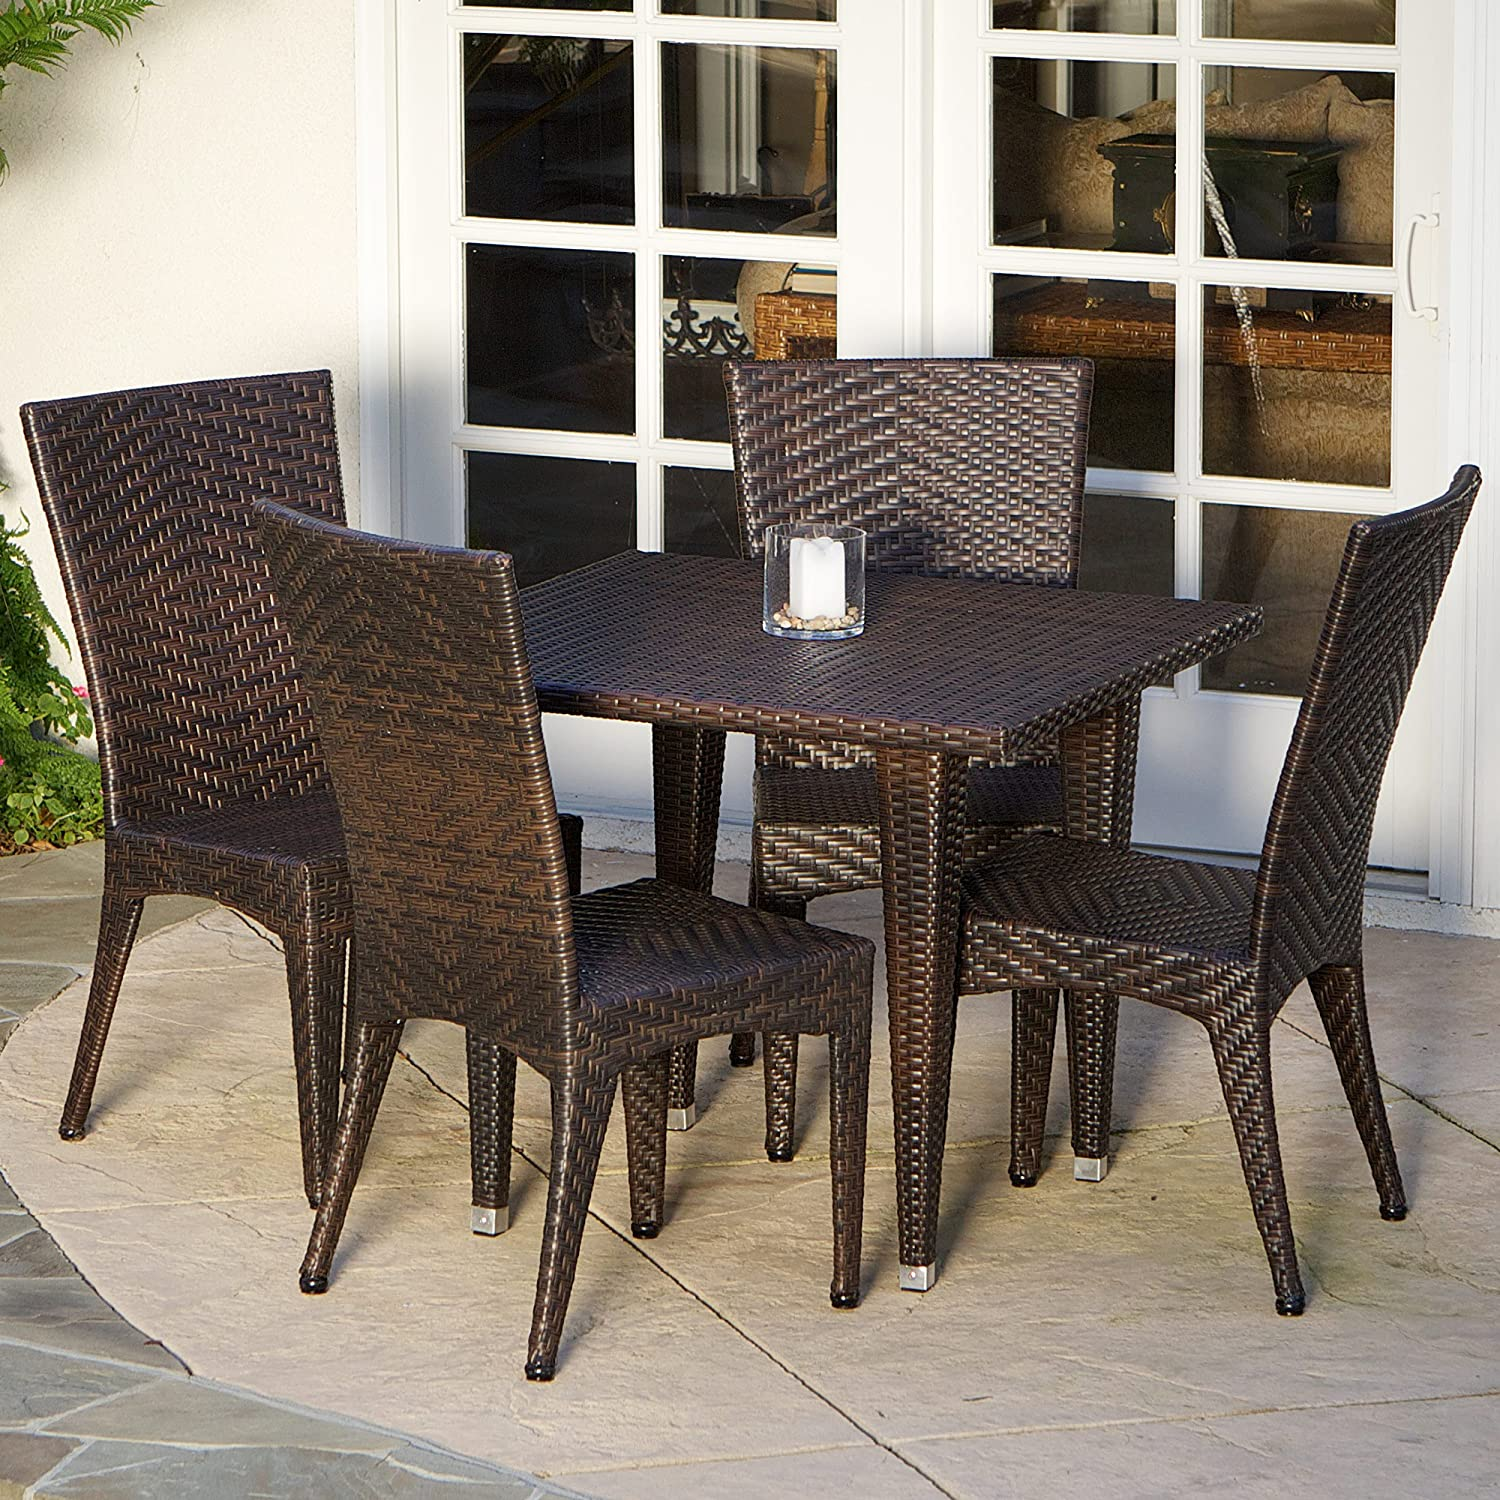 Christopher Knight Home 232462 Brooklyn Patio Furniture ~ 5-Piece Outdoor Wicker Dining Set, Brown